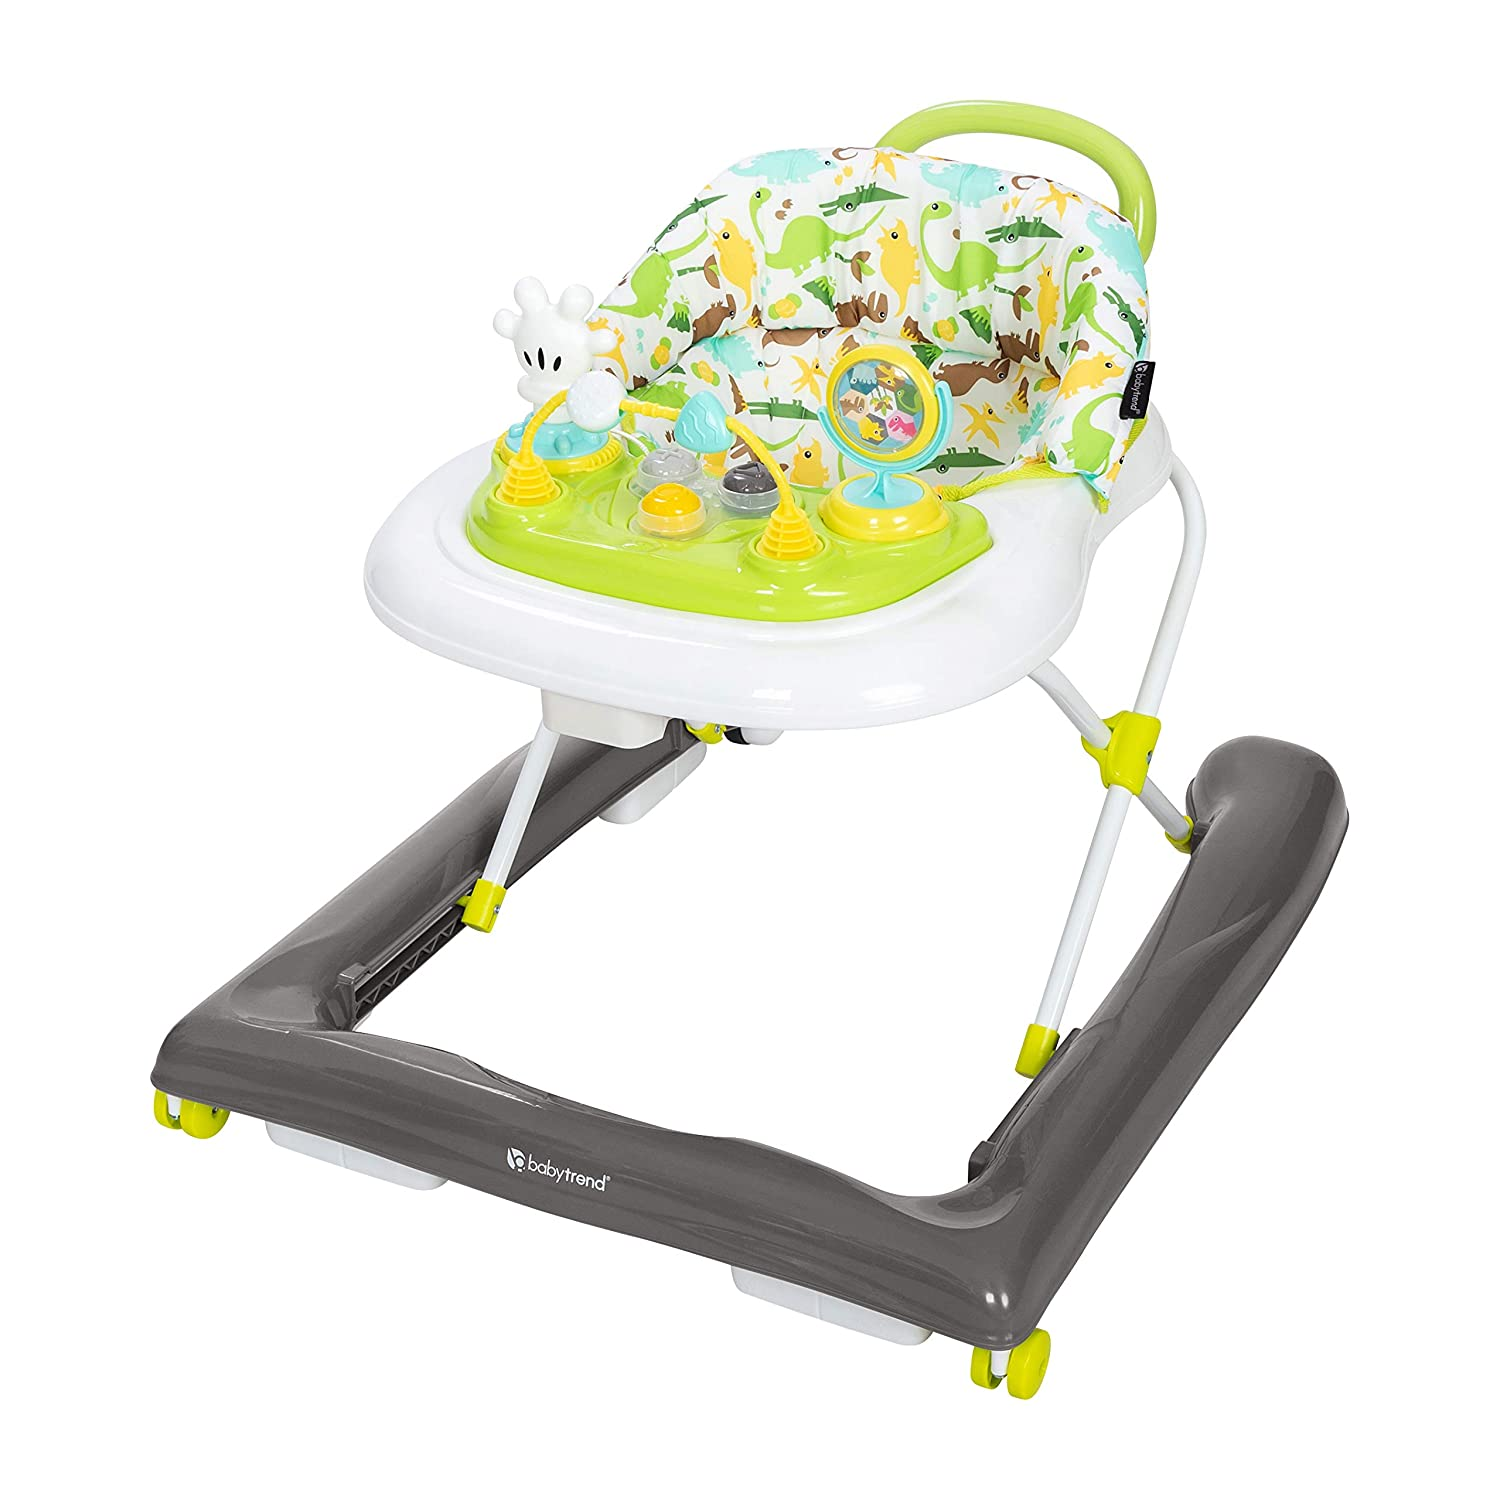 Baby Trend activity walker for girl boy with wheels toys chair Walk behind tray